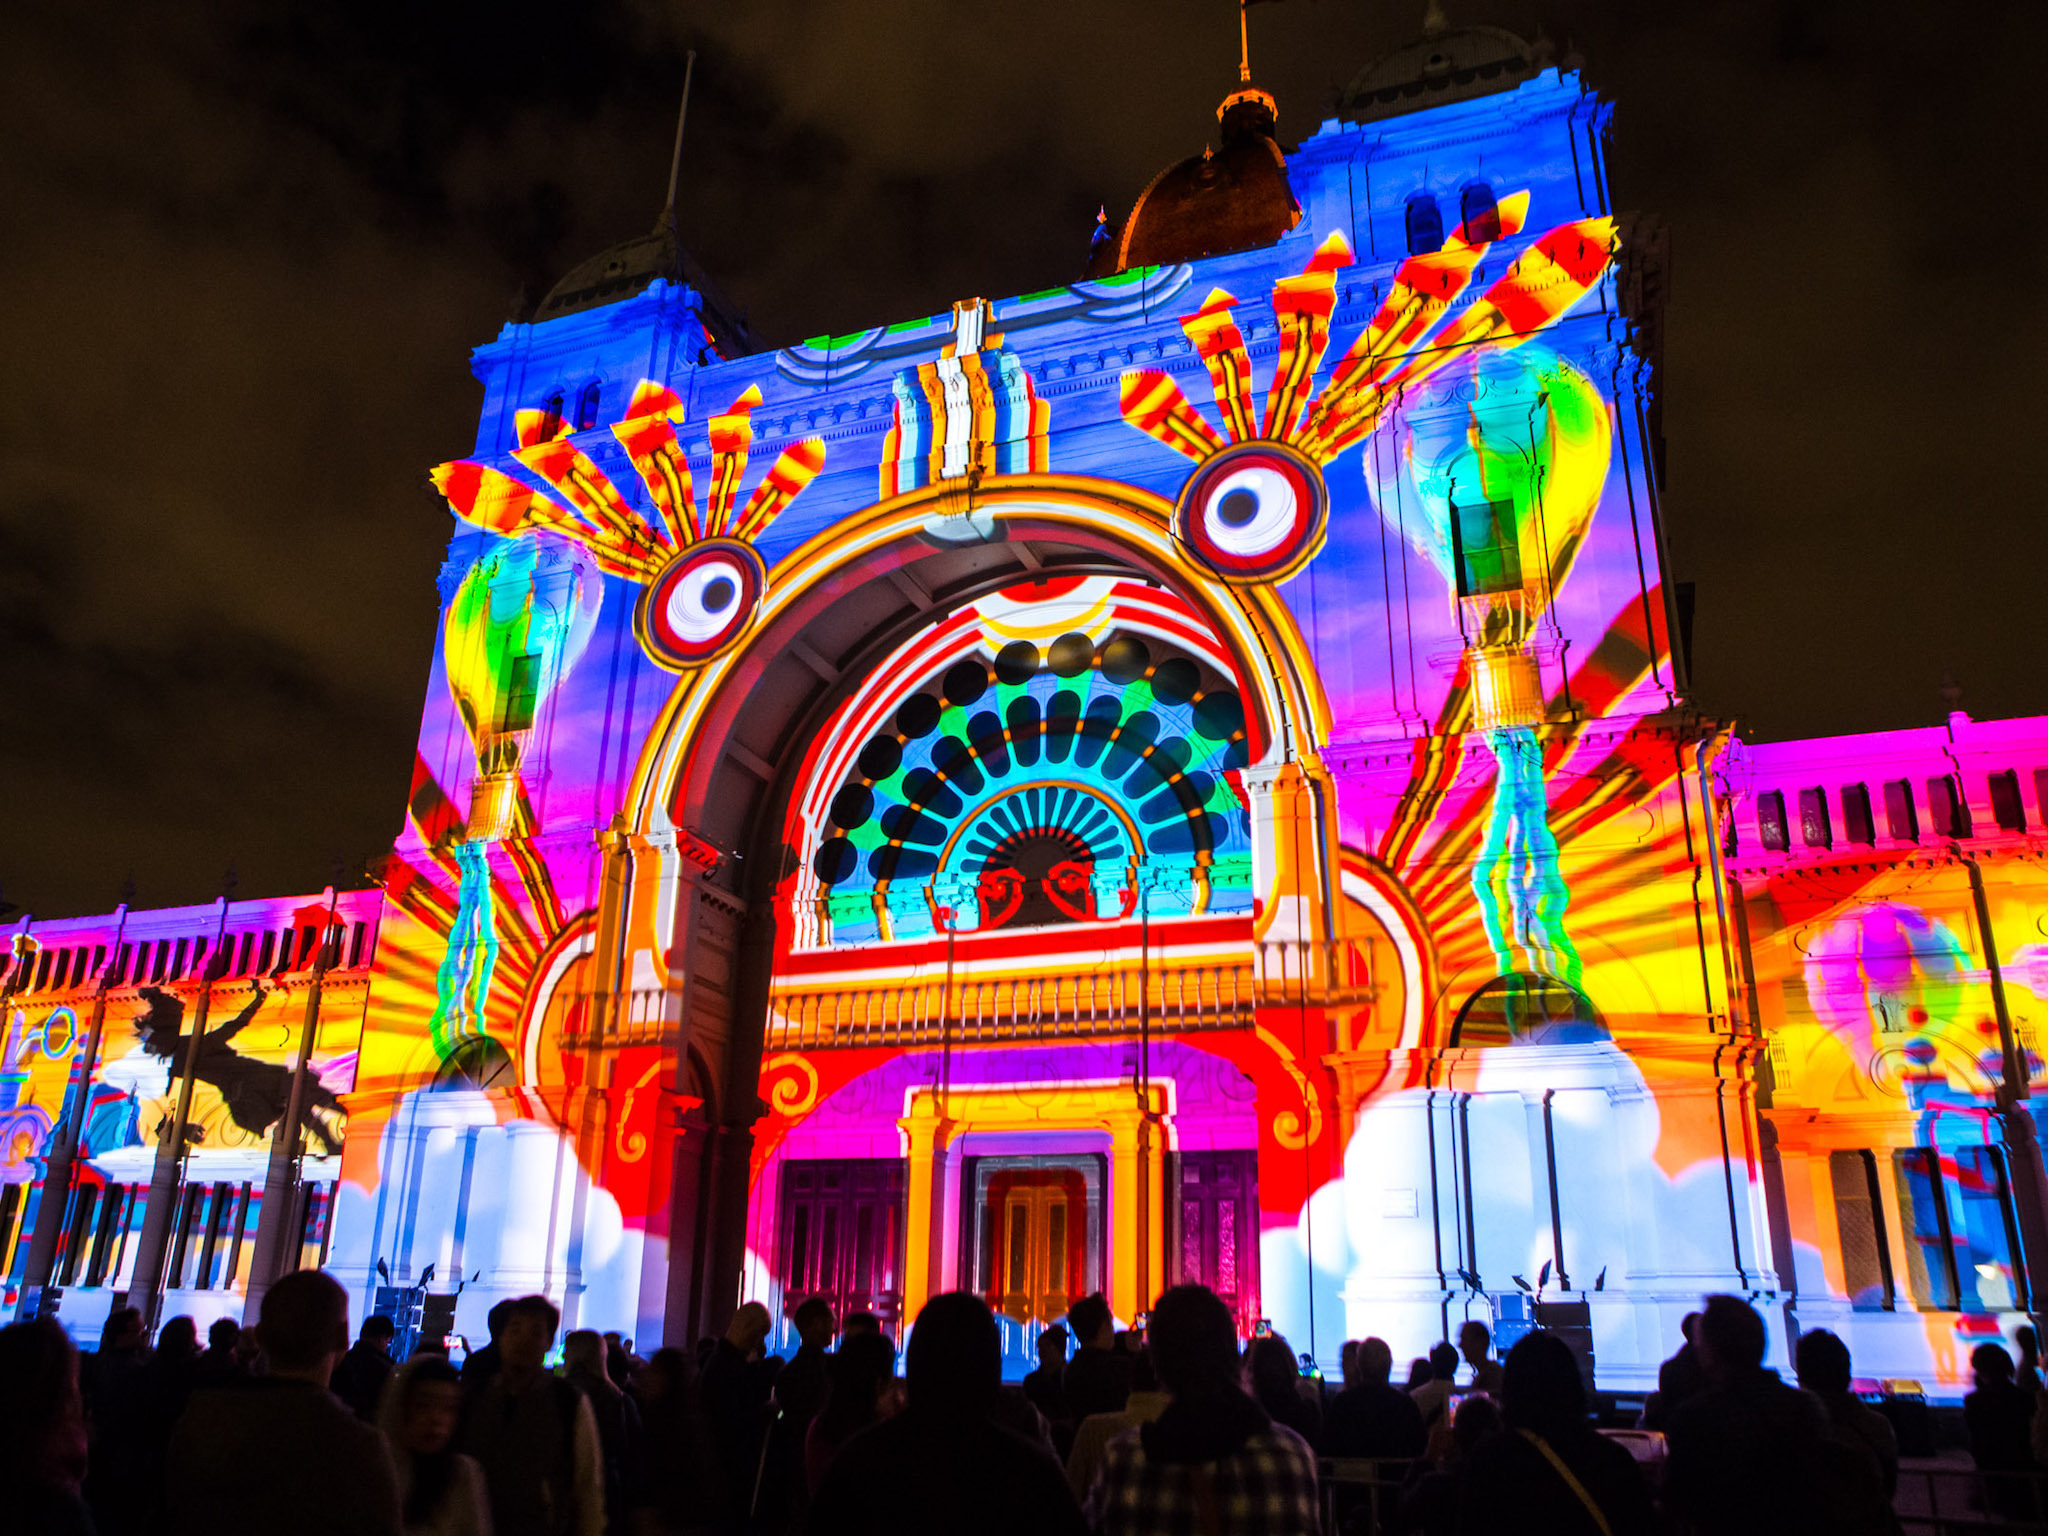 Rhythms of the Night projection art on the Royal Exhibition Building at White Night Melbourne